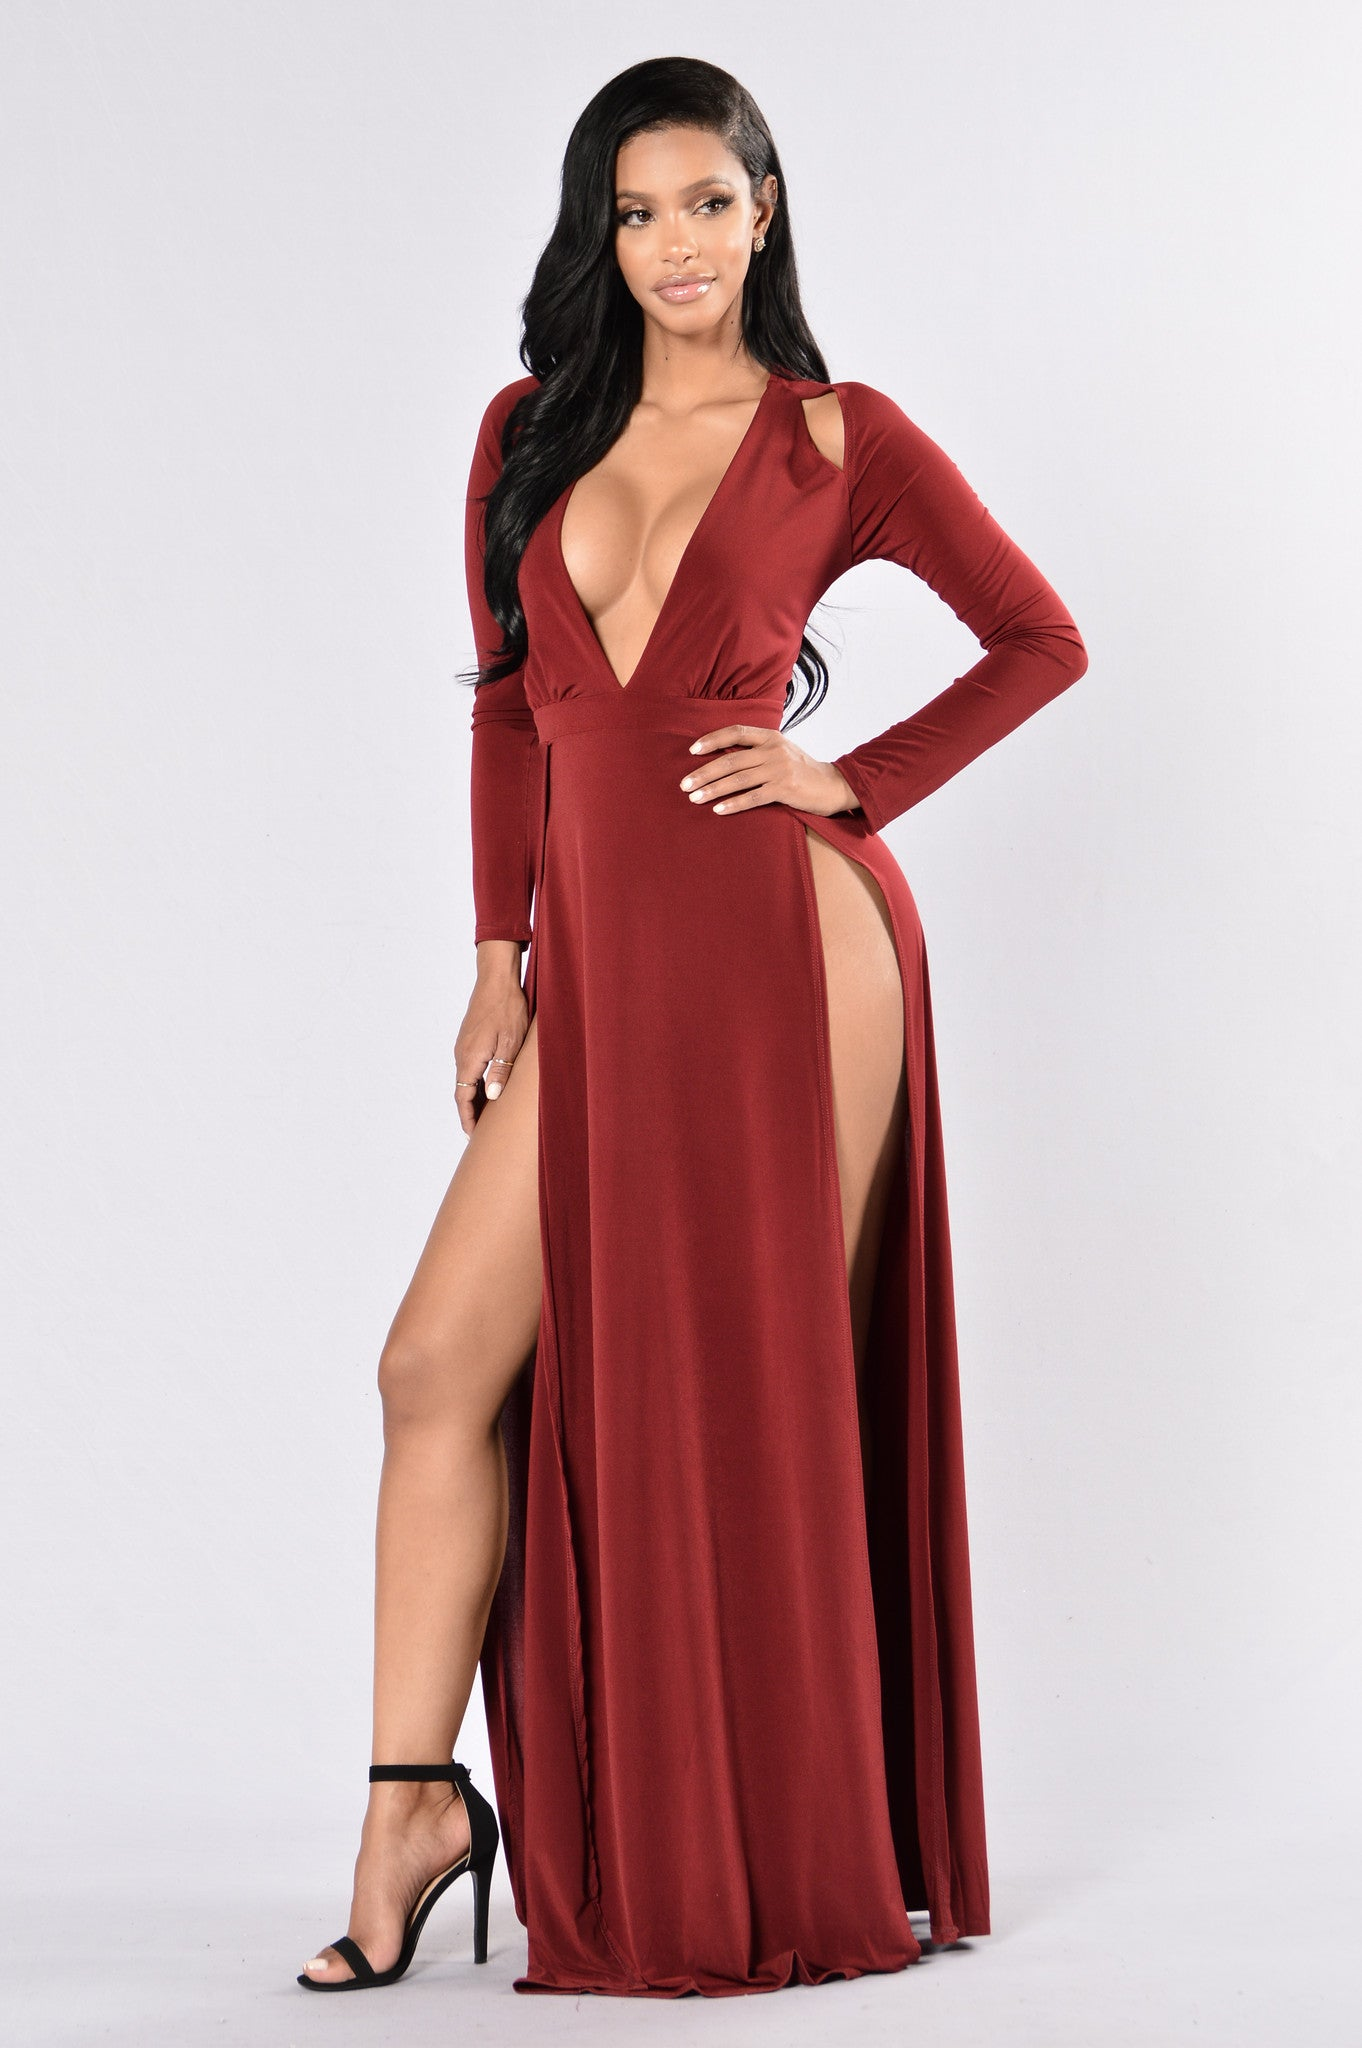 Gone with the wind fabulous dress burgundy